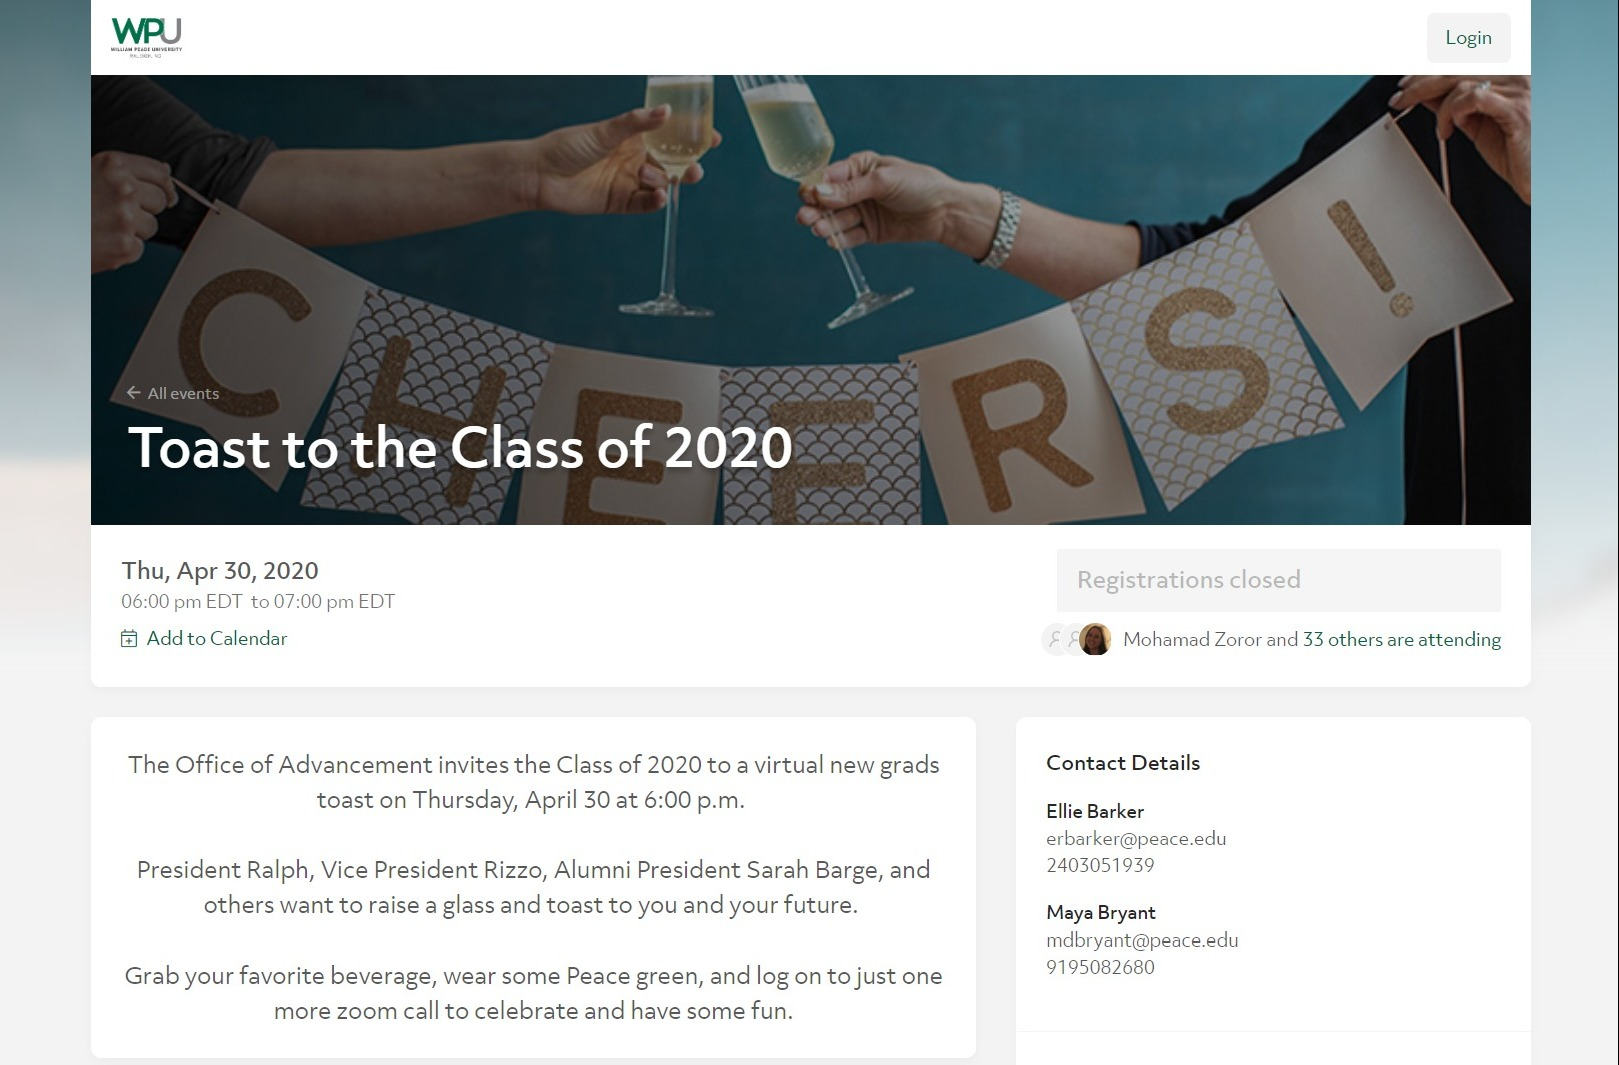 William Peace University welcomed the Class of 2020 to the Alumni Association virtually